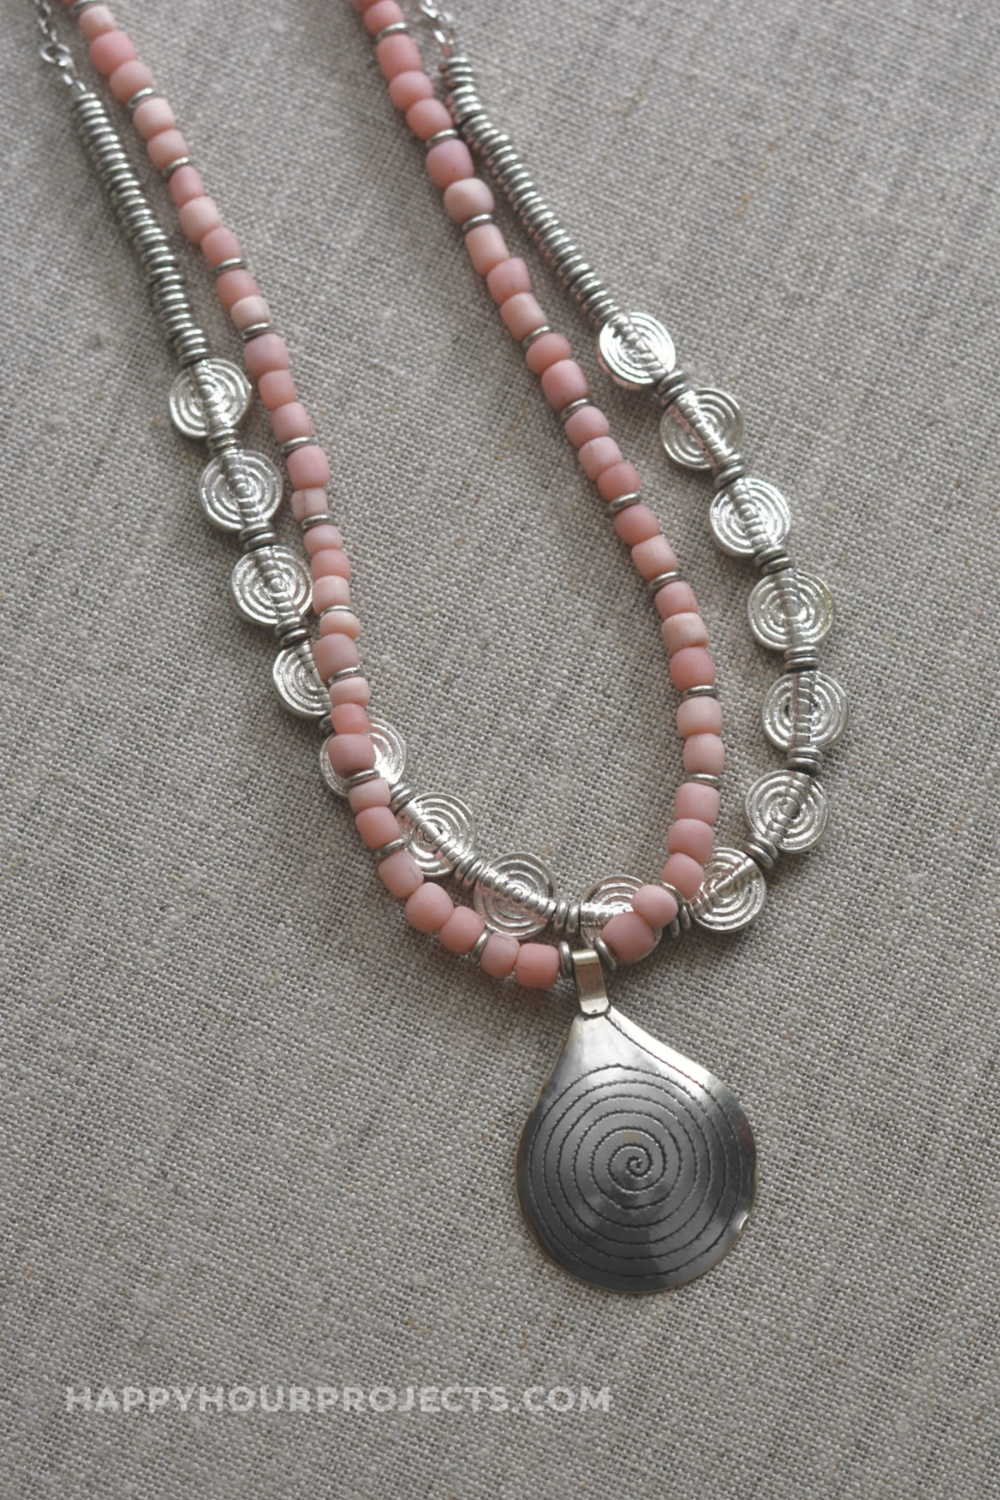 http://happyhourprojects.com/wp-content/uploads/2018/10/Coral-Spiral-Necklace-11.jpg